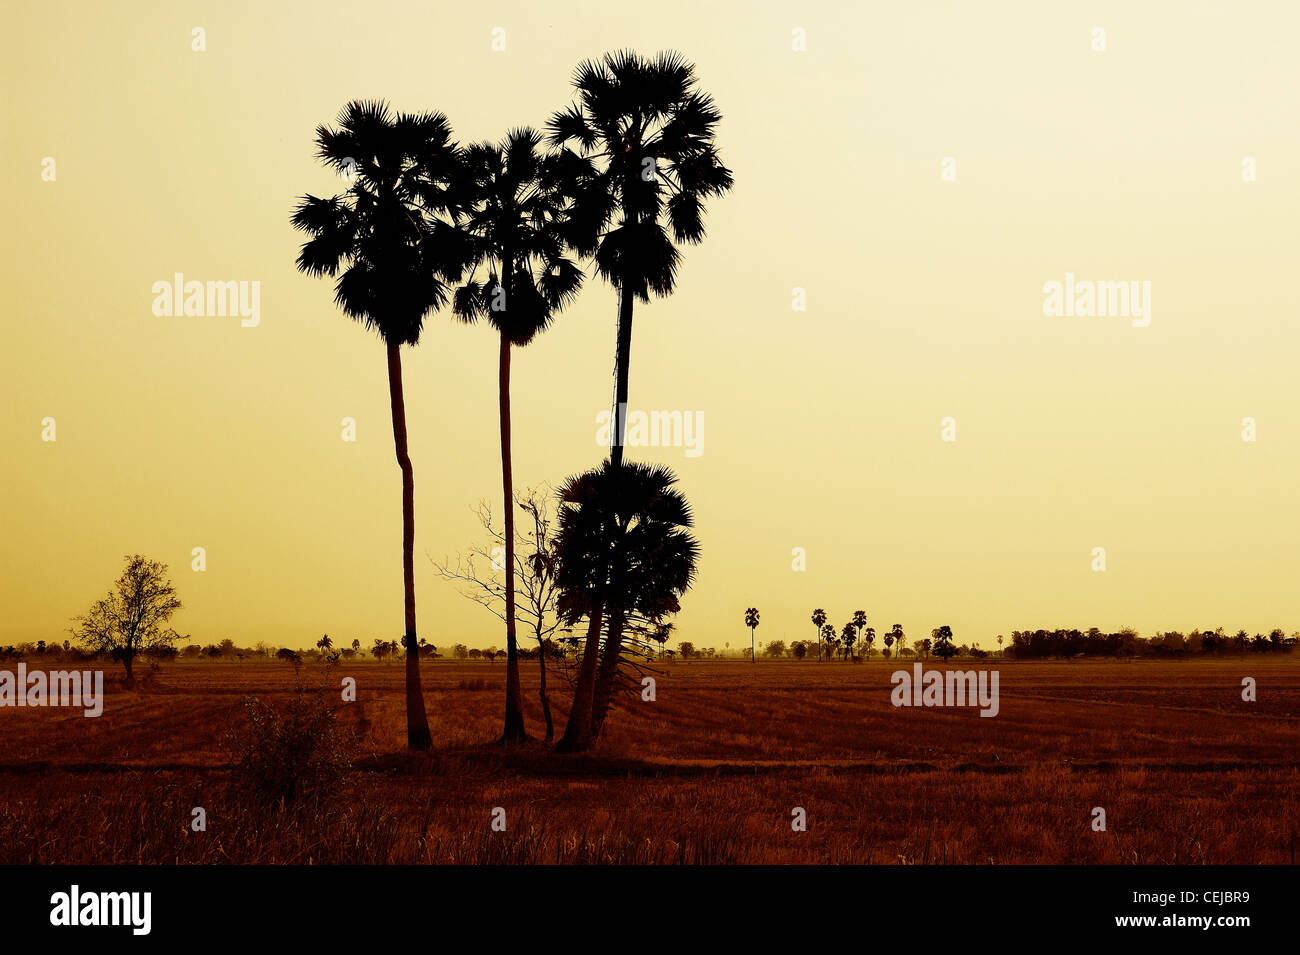 Sugar palm tree in rice field - Stock Image